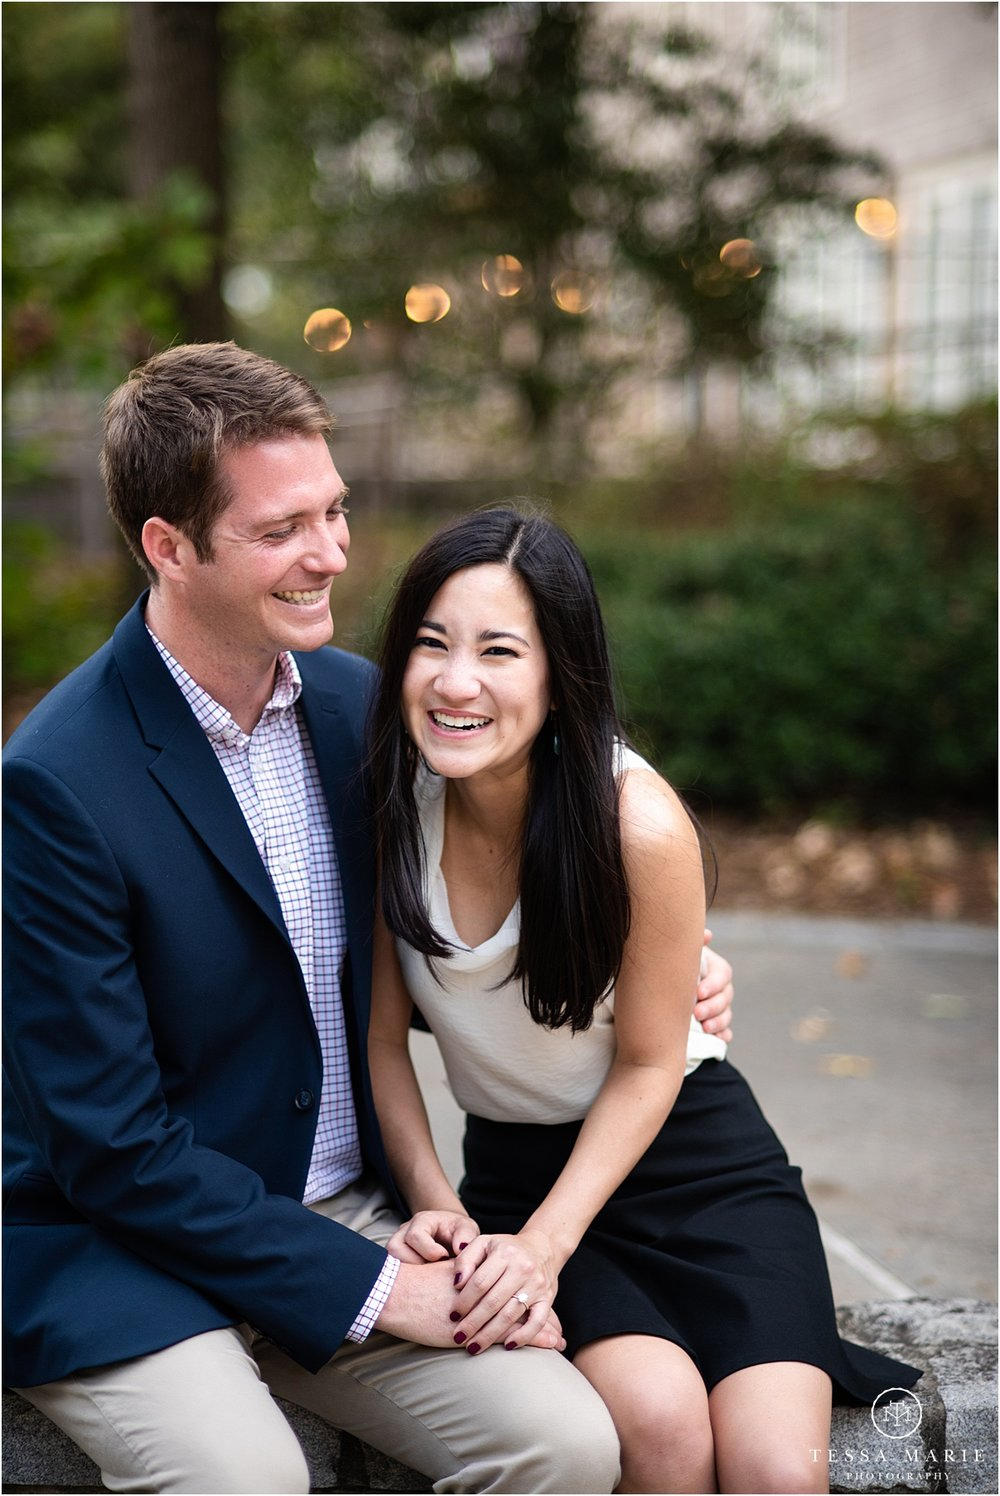 Tessa_marie_photography_wedding_photographer_engagement_pictures_piedmont_park_0055.jpg